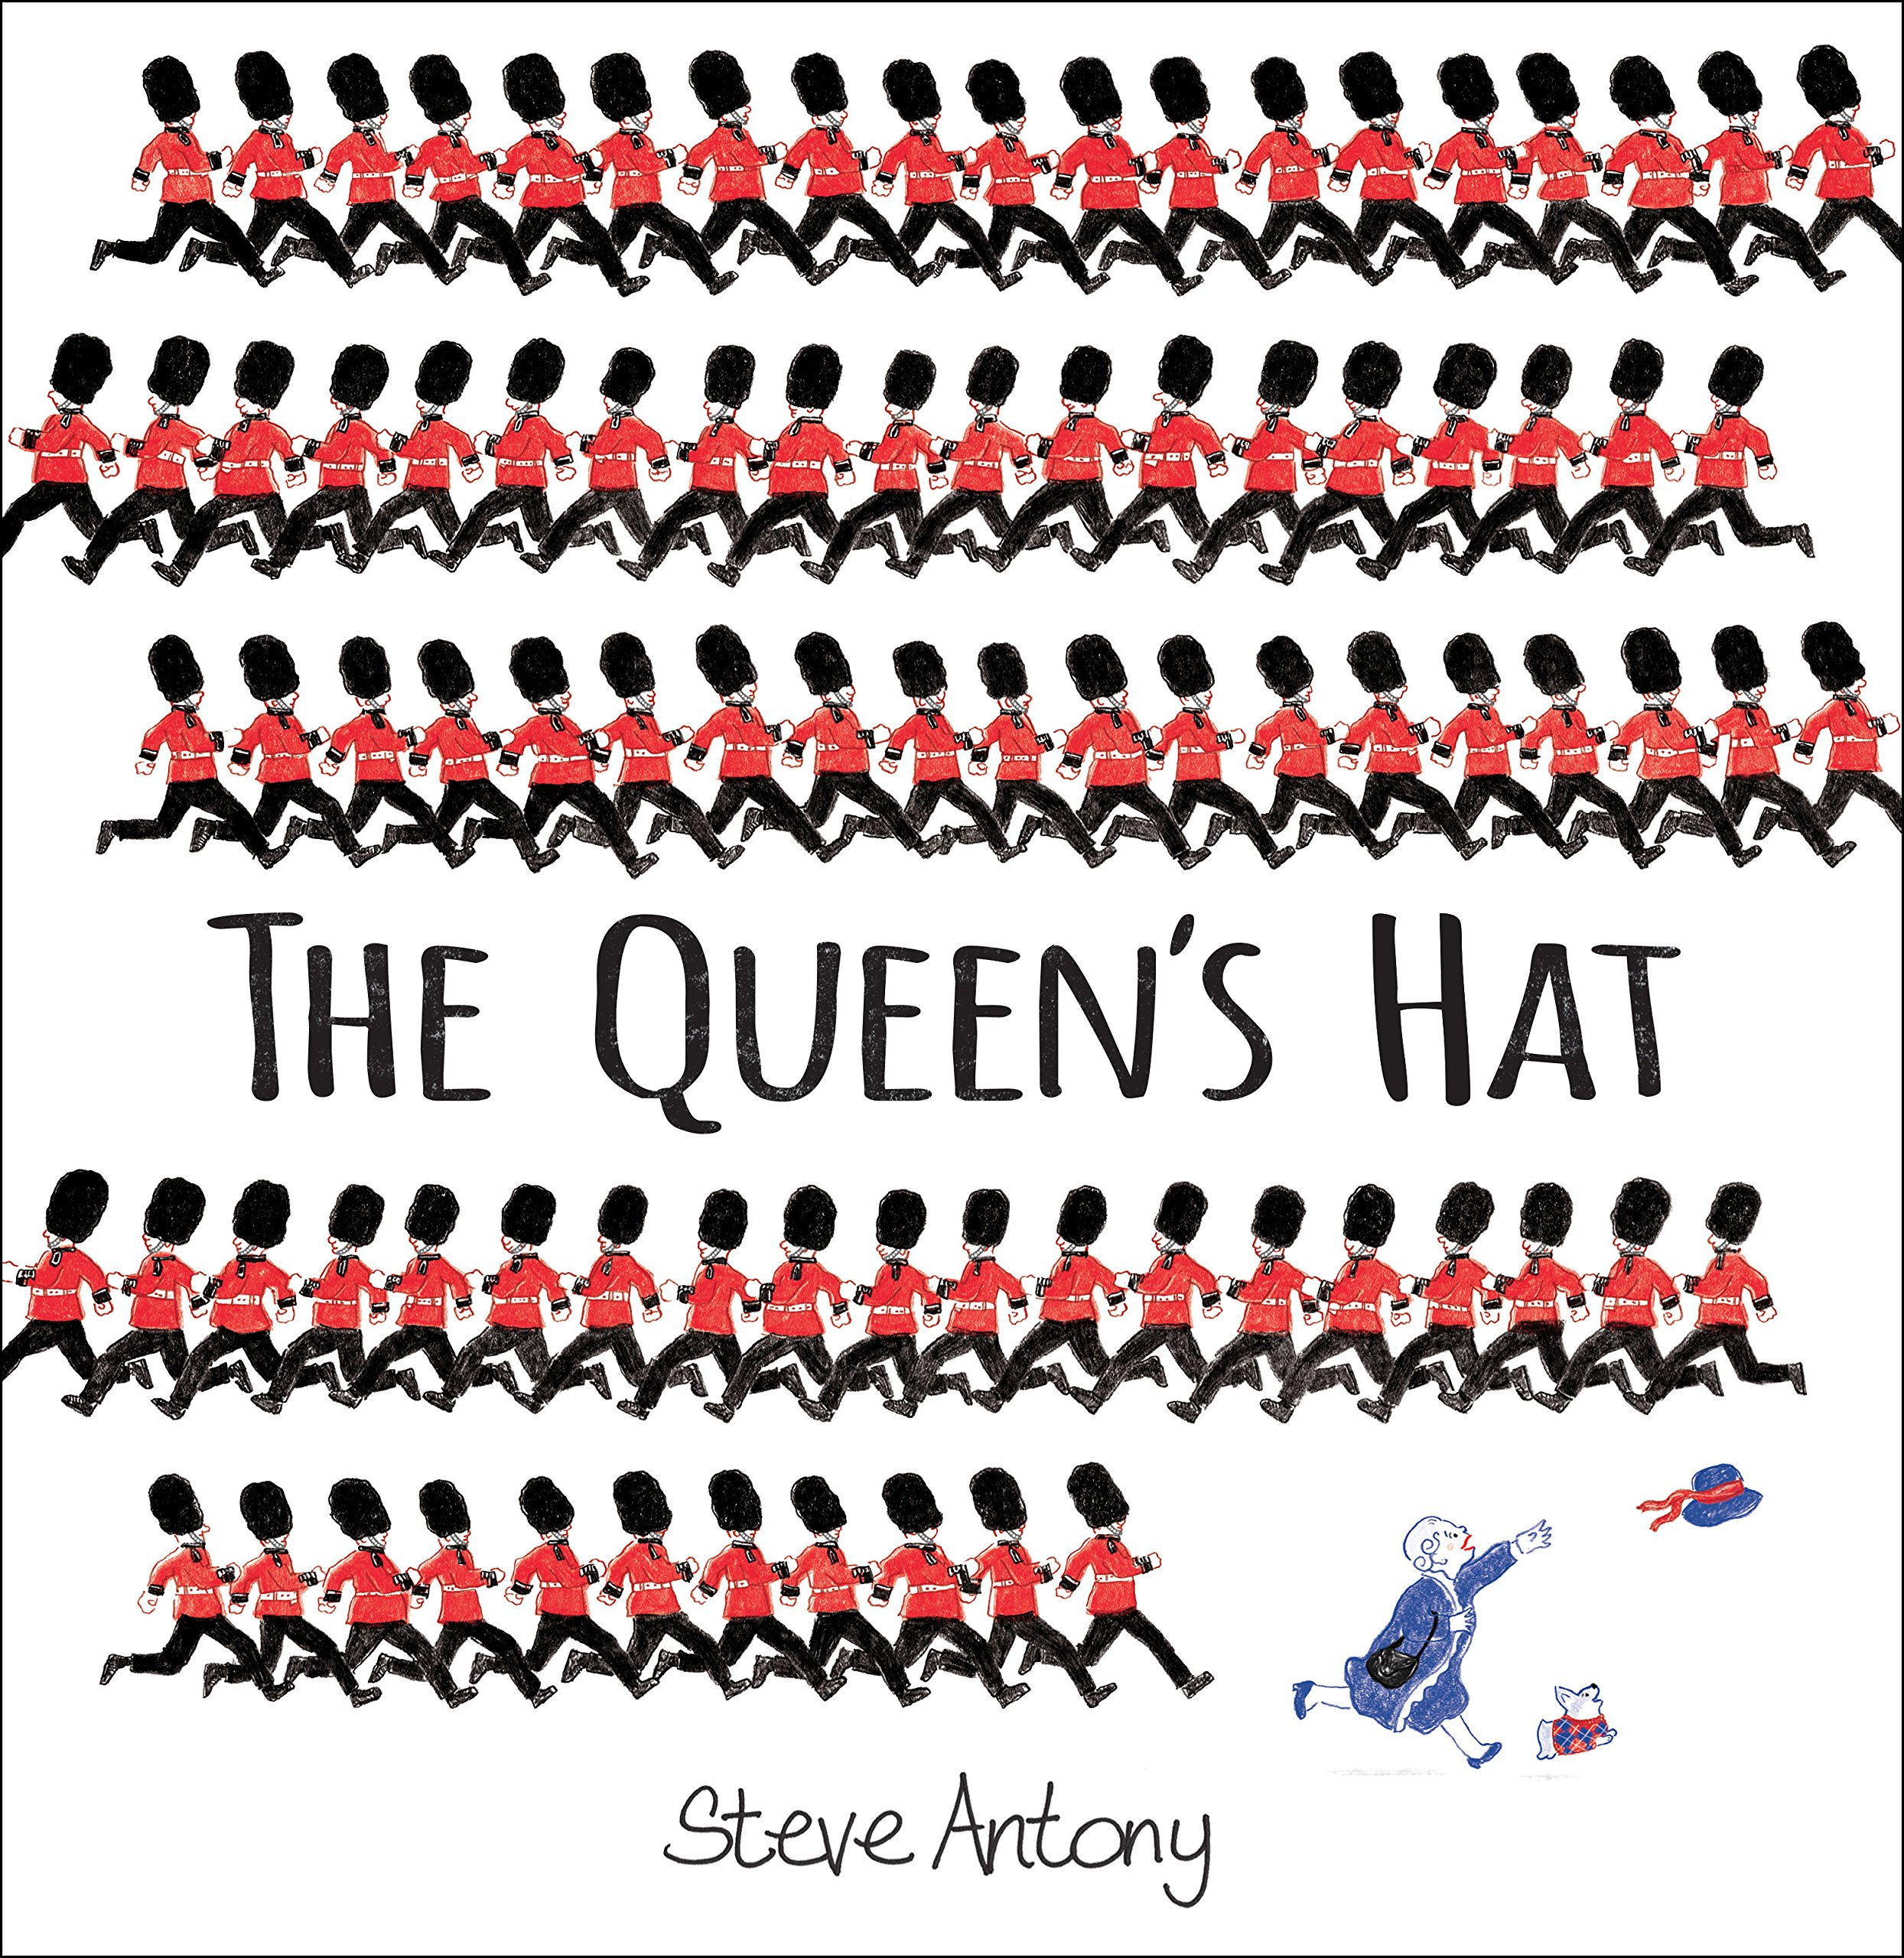 The Queen's Hat, Steve Antony - And of course, being British, our students are hopeful for a British themed book every once in a while. This book is wildly entertaining for students aged 3-6. Follow the Queen on this super adventurous journey as she chases her… hat! This book is highly entertaining and provides the reader with an opportunity to explore the U.K. through a book!